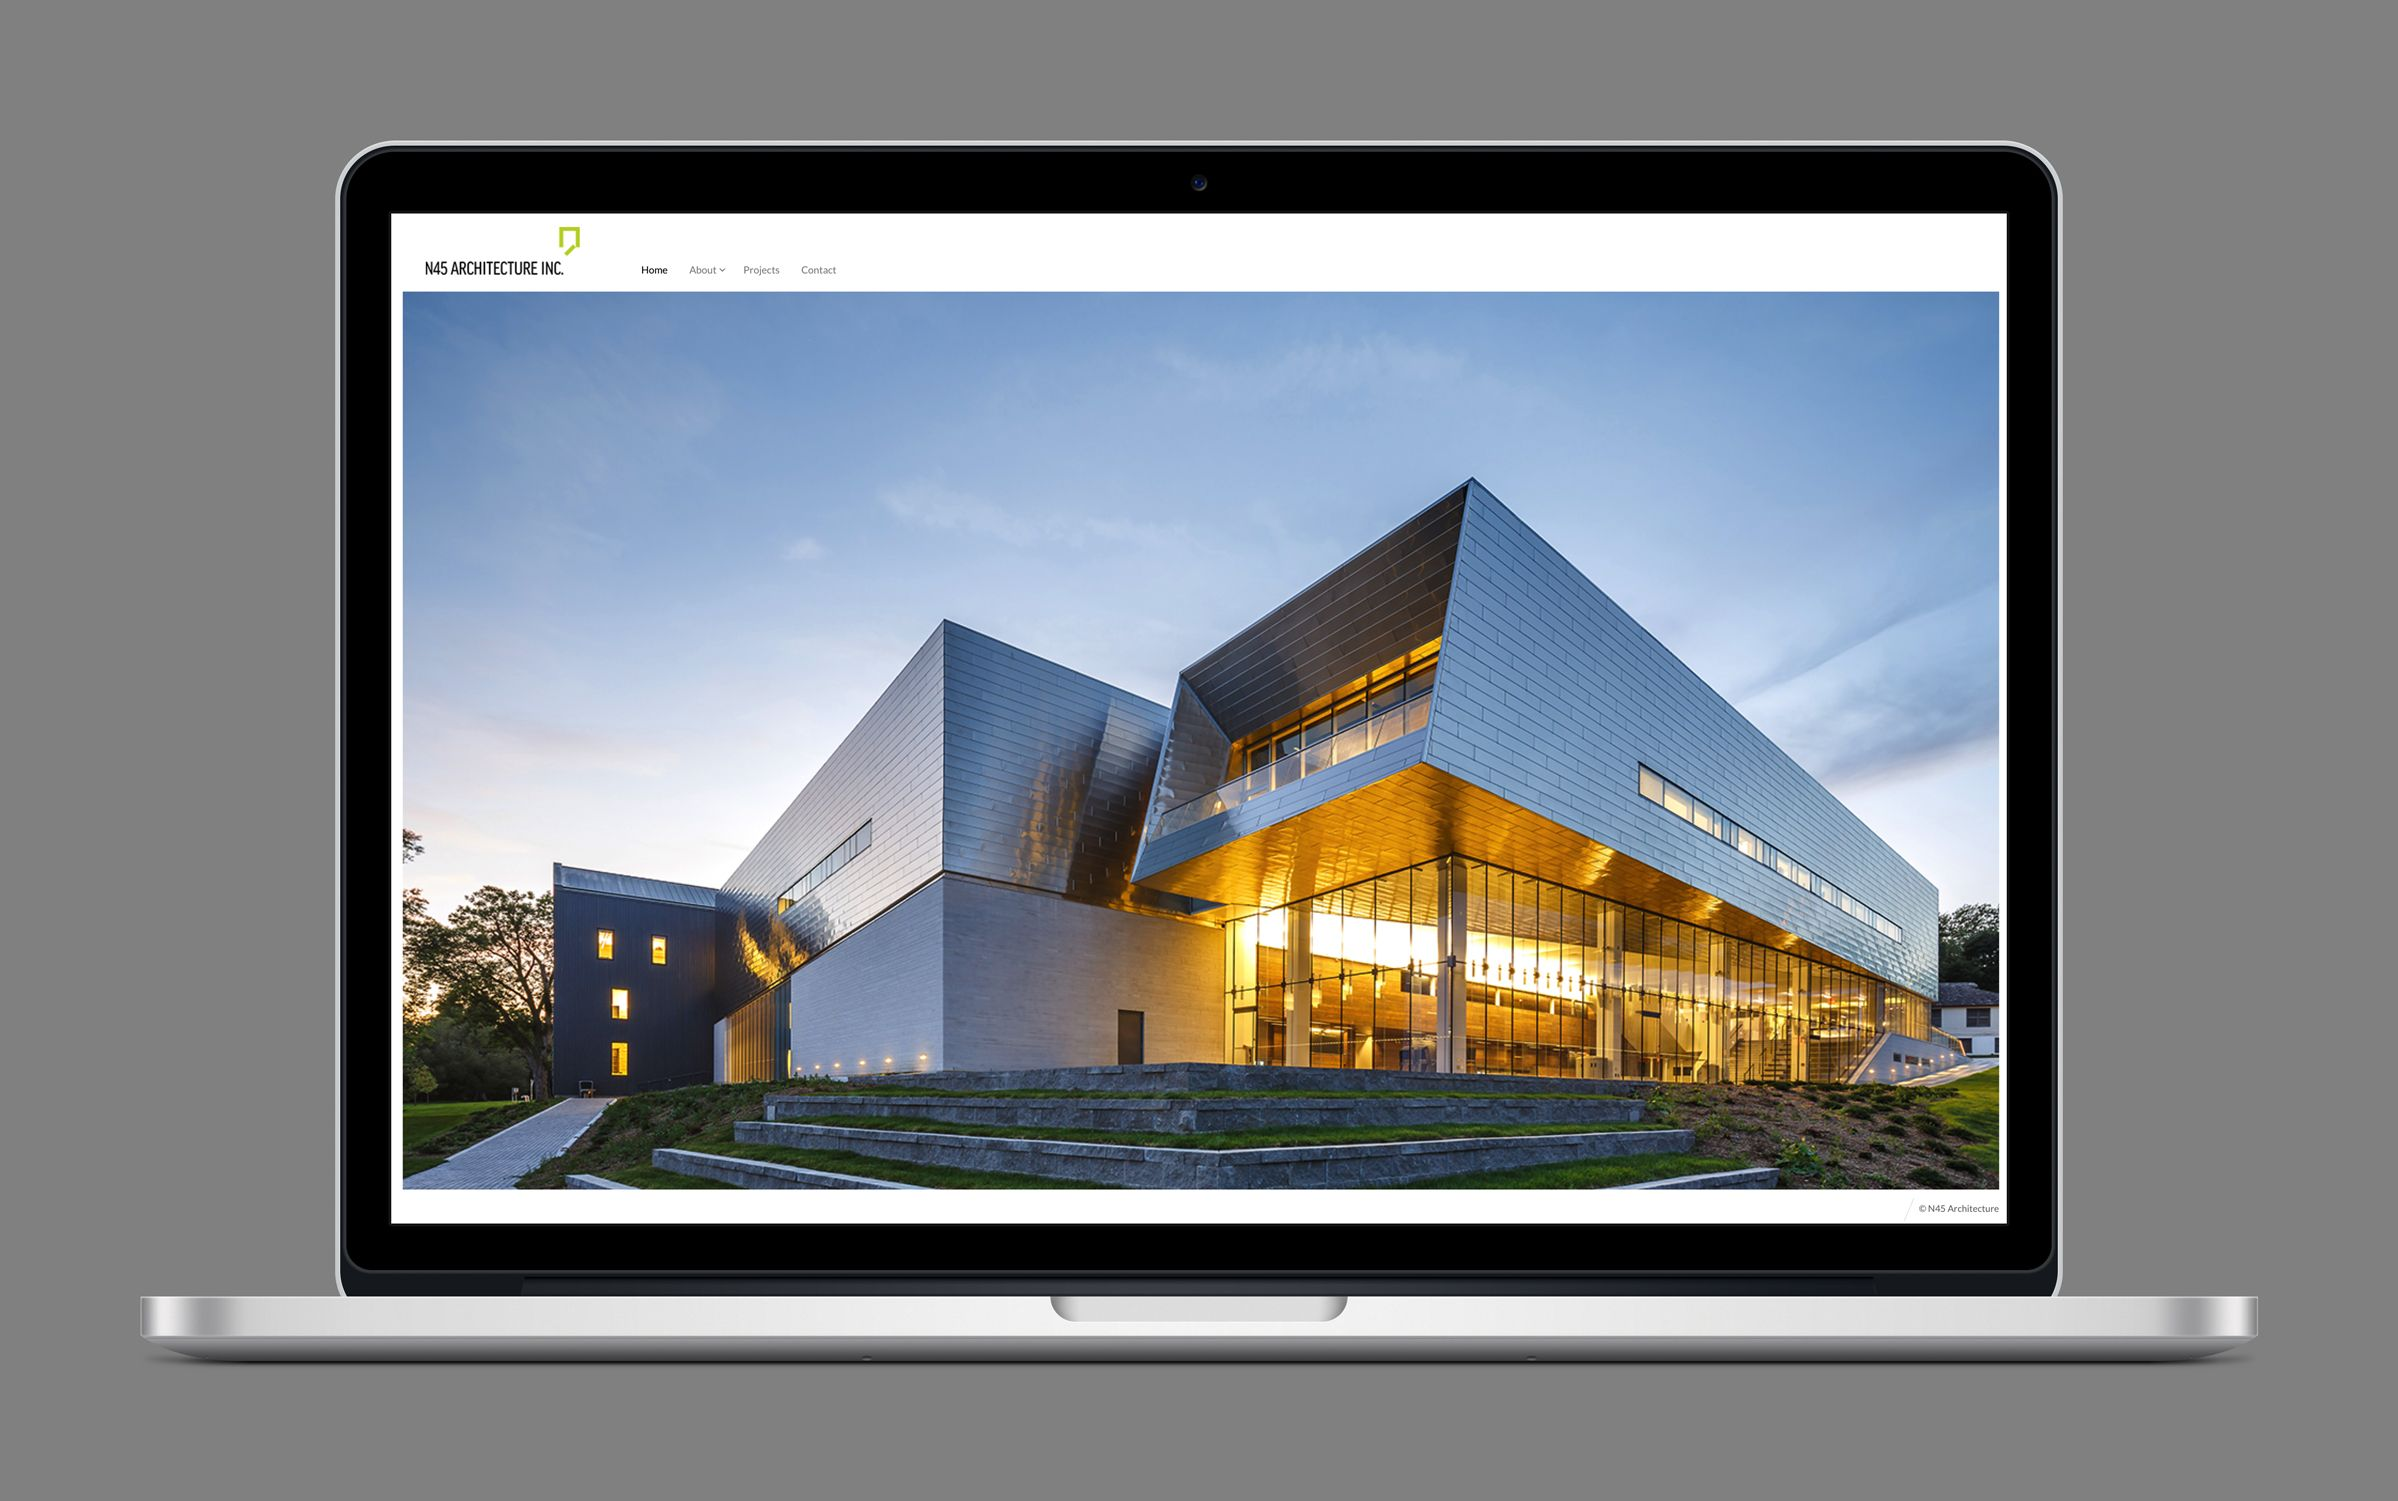 Website 1 for N45 Architecture Inc., architects by Graphic Designer idApostle